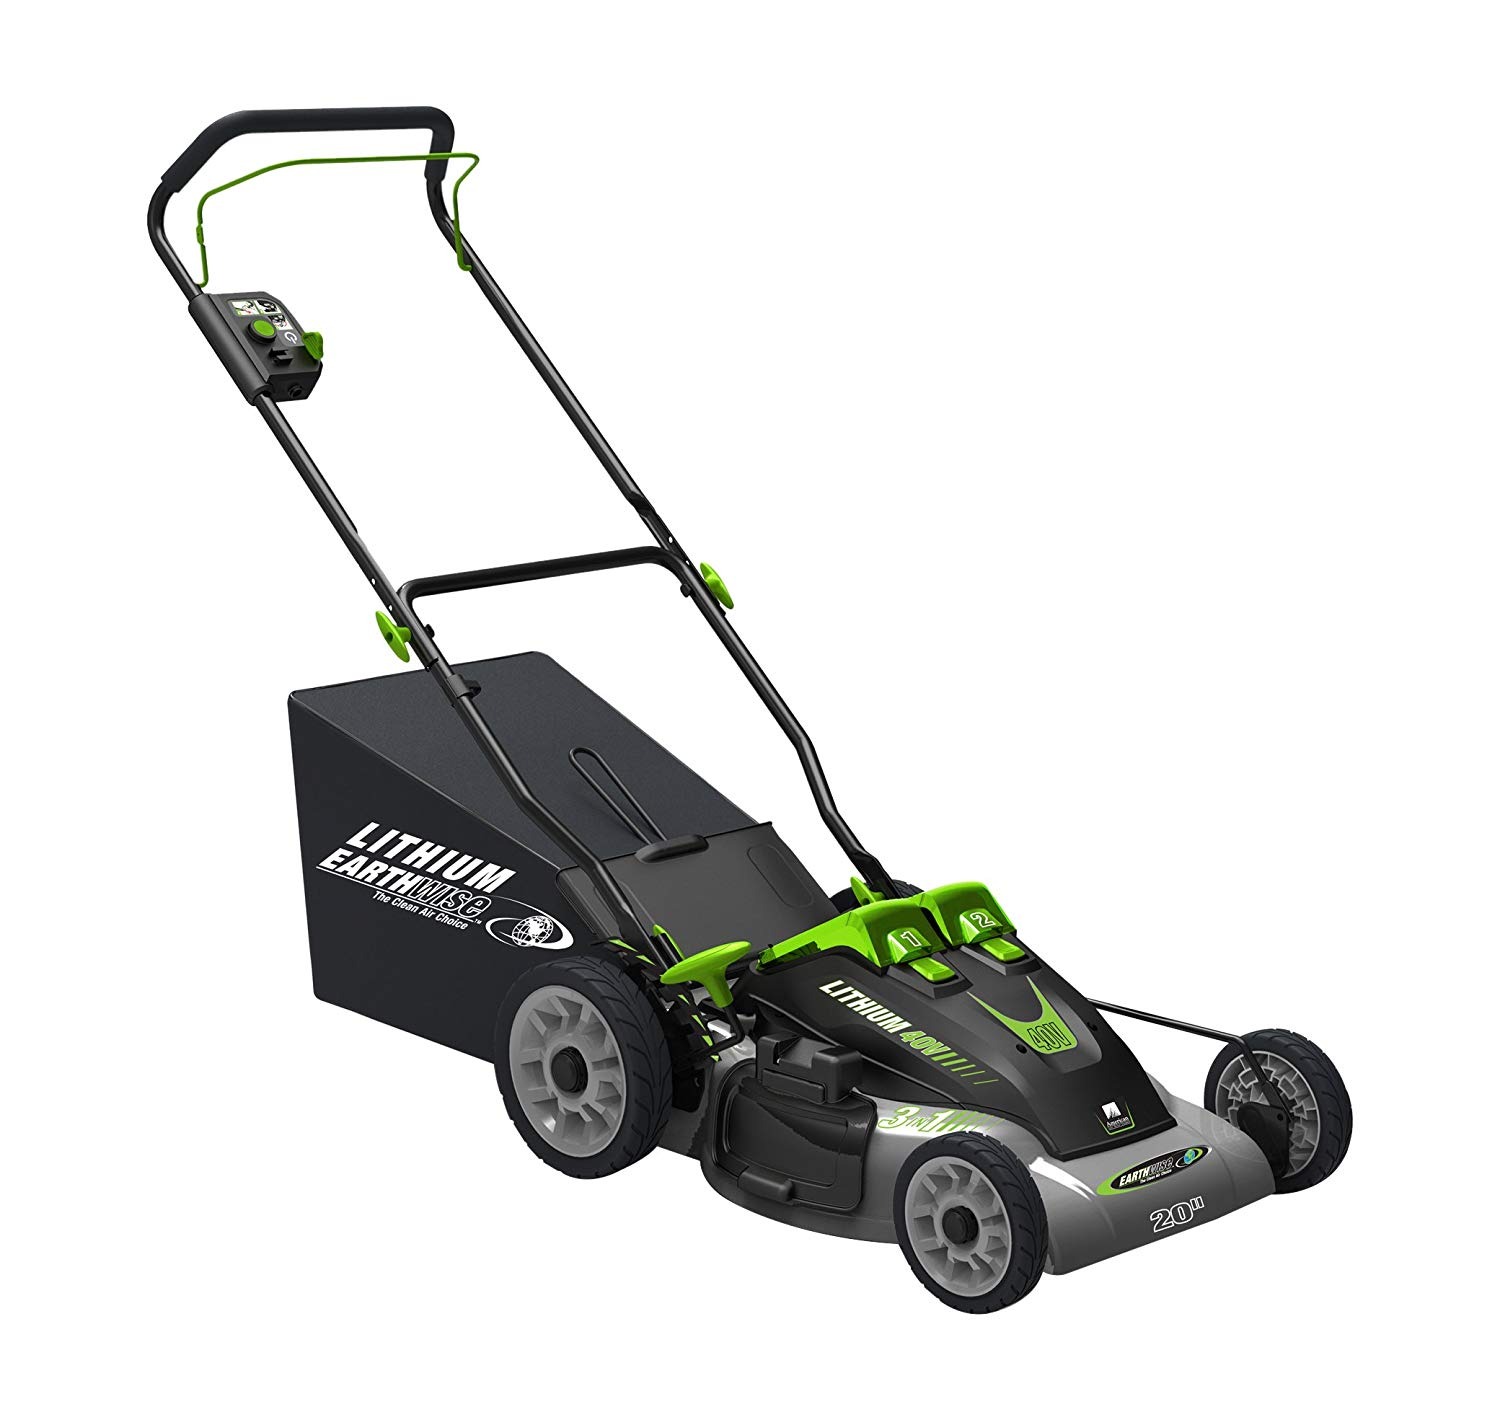 Best Electric Lawn Mower 2020.5 Best Battery Powered Cordless Lawn Mowers 2020 Going To